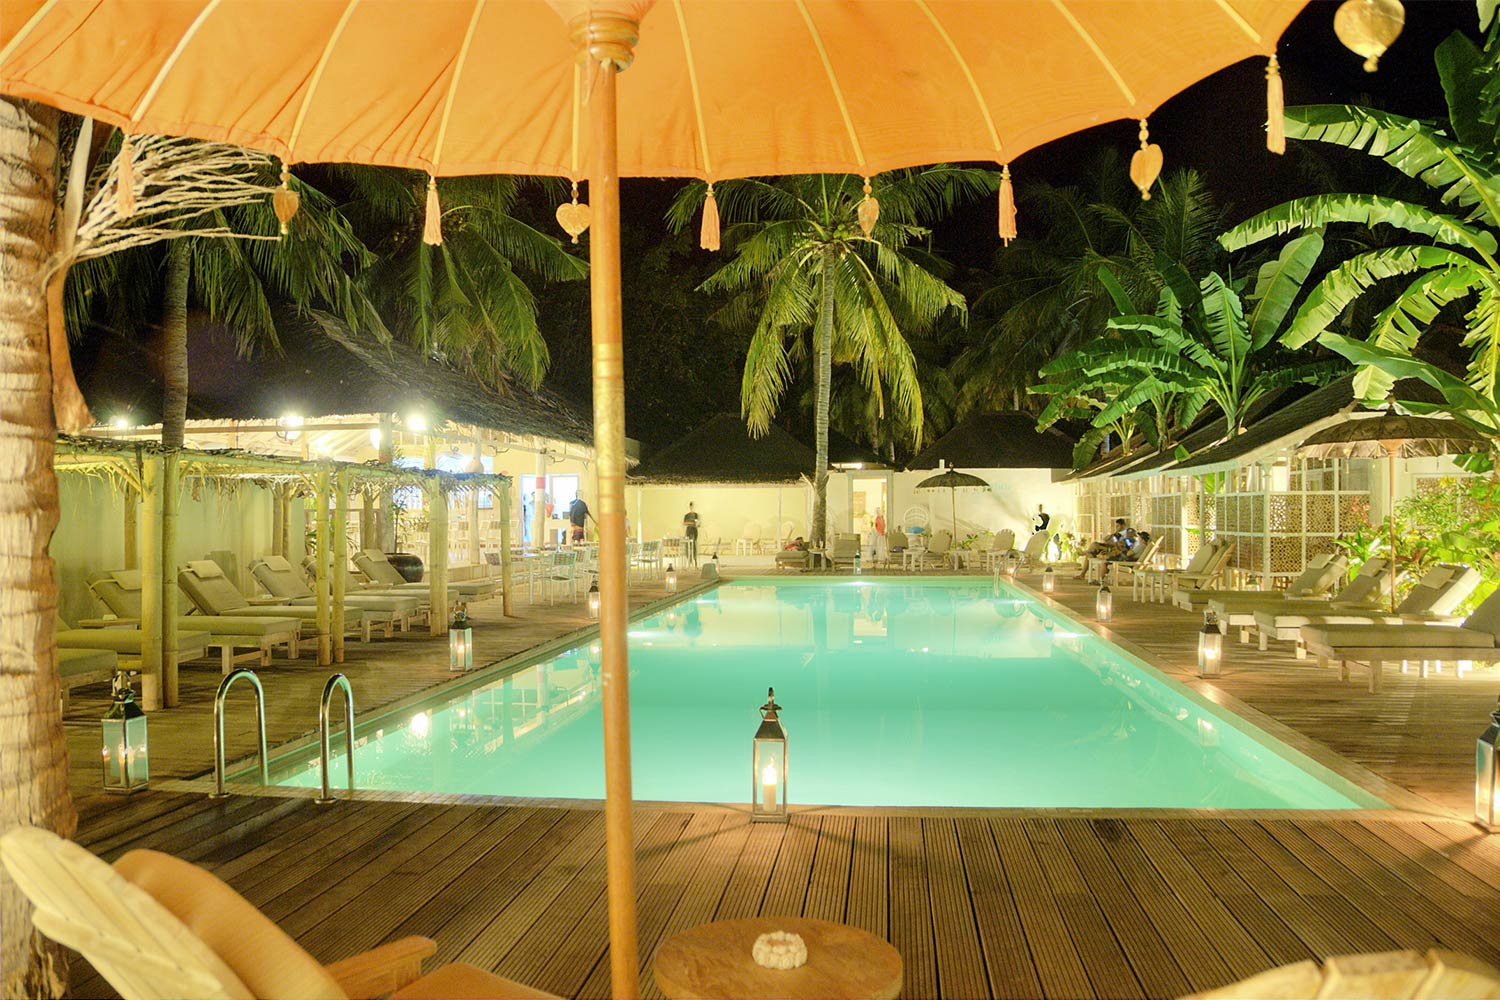 Swimming pool by night - Les Villas Ottalia Gili Trawangan